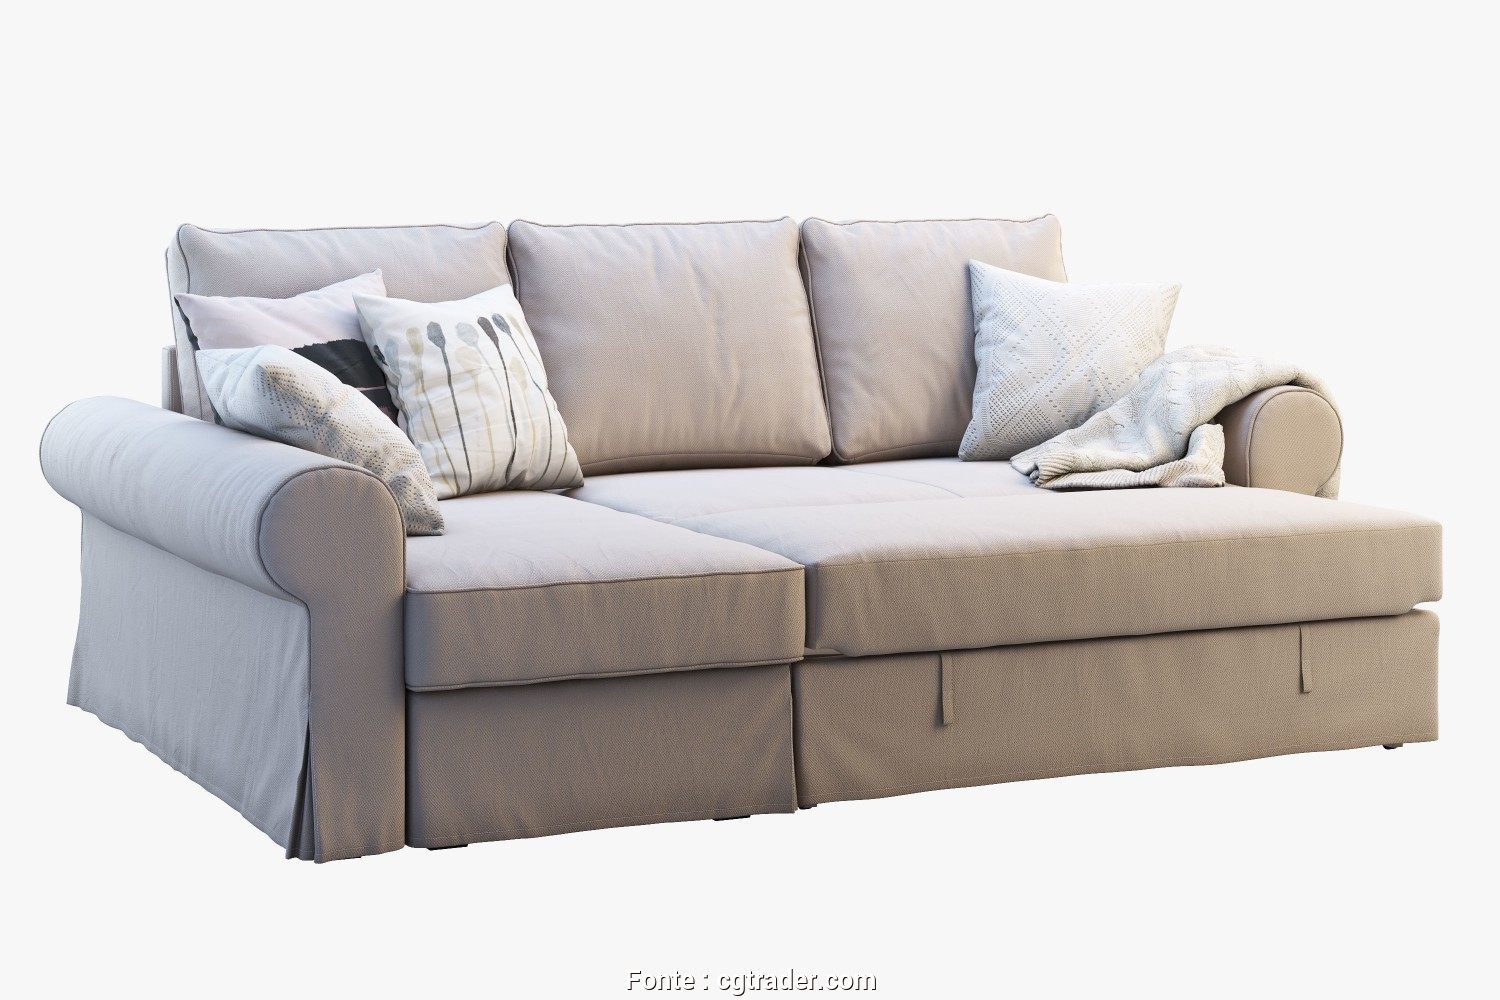 Backabro Ikea Forum, Deale ... Ikea Backabro 2 Sofas 3D Model, Obj, 3Ds, 7